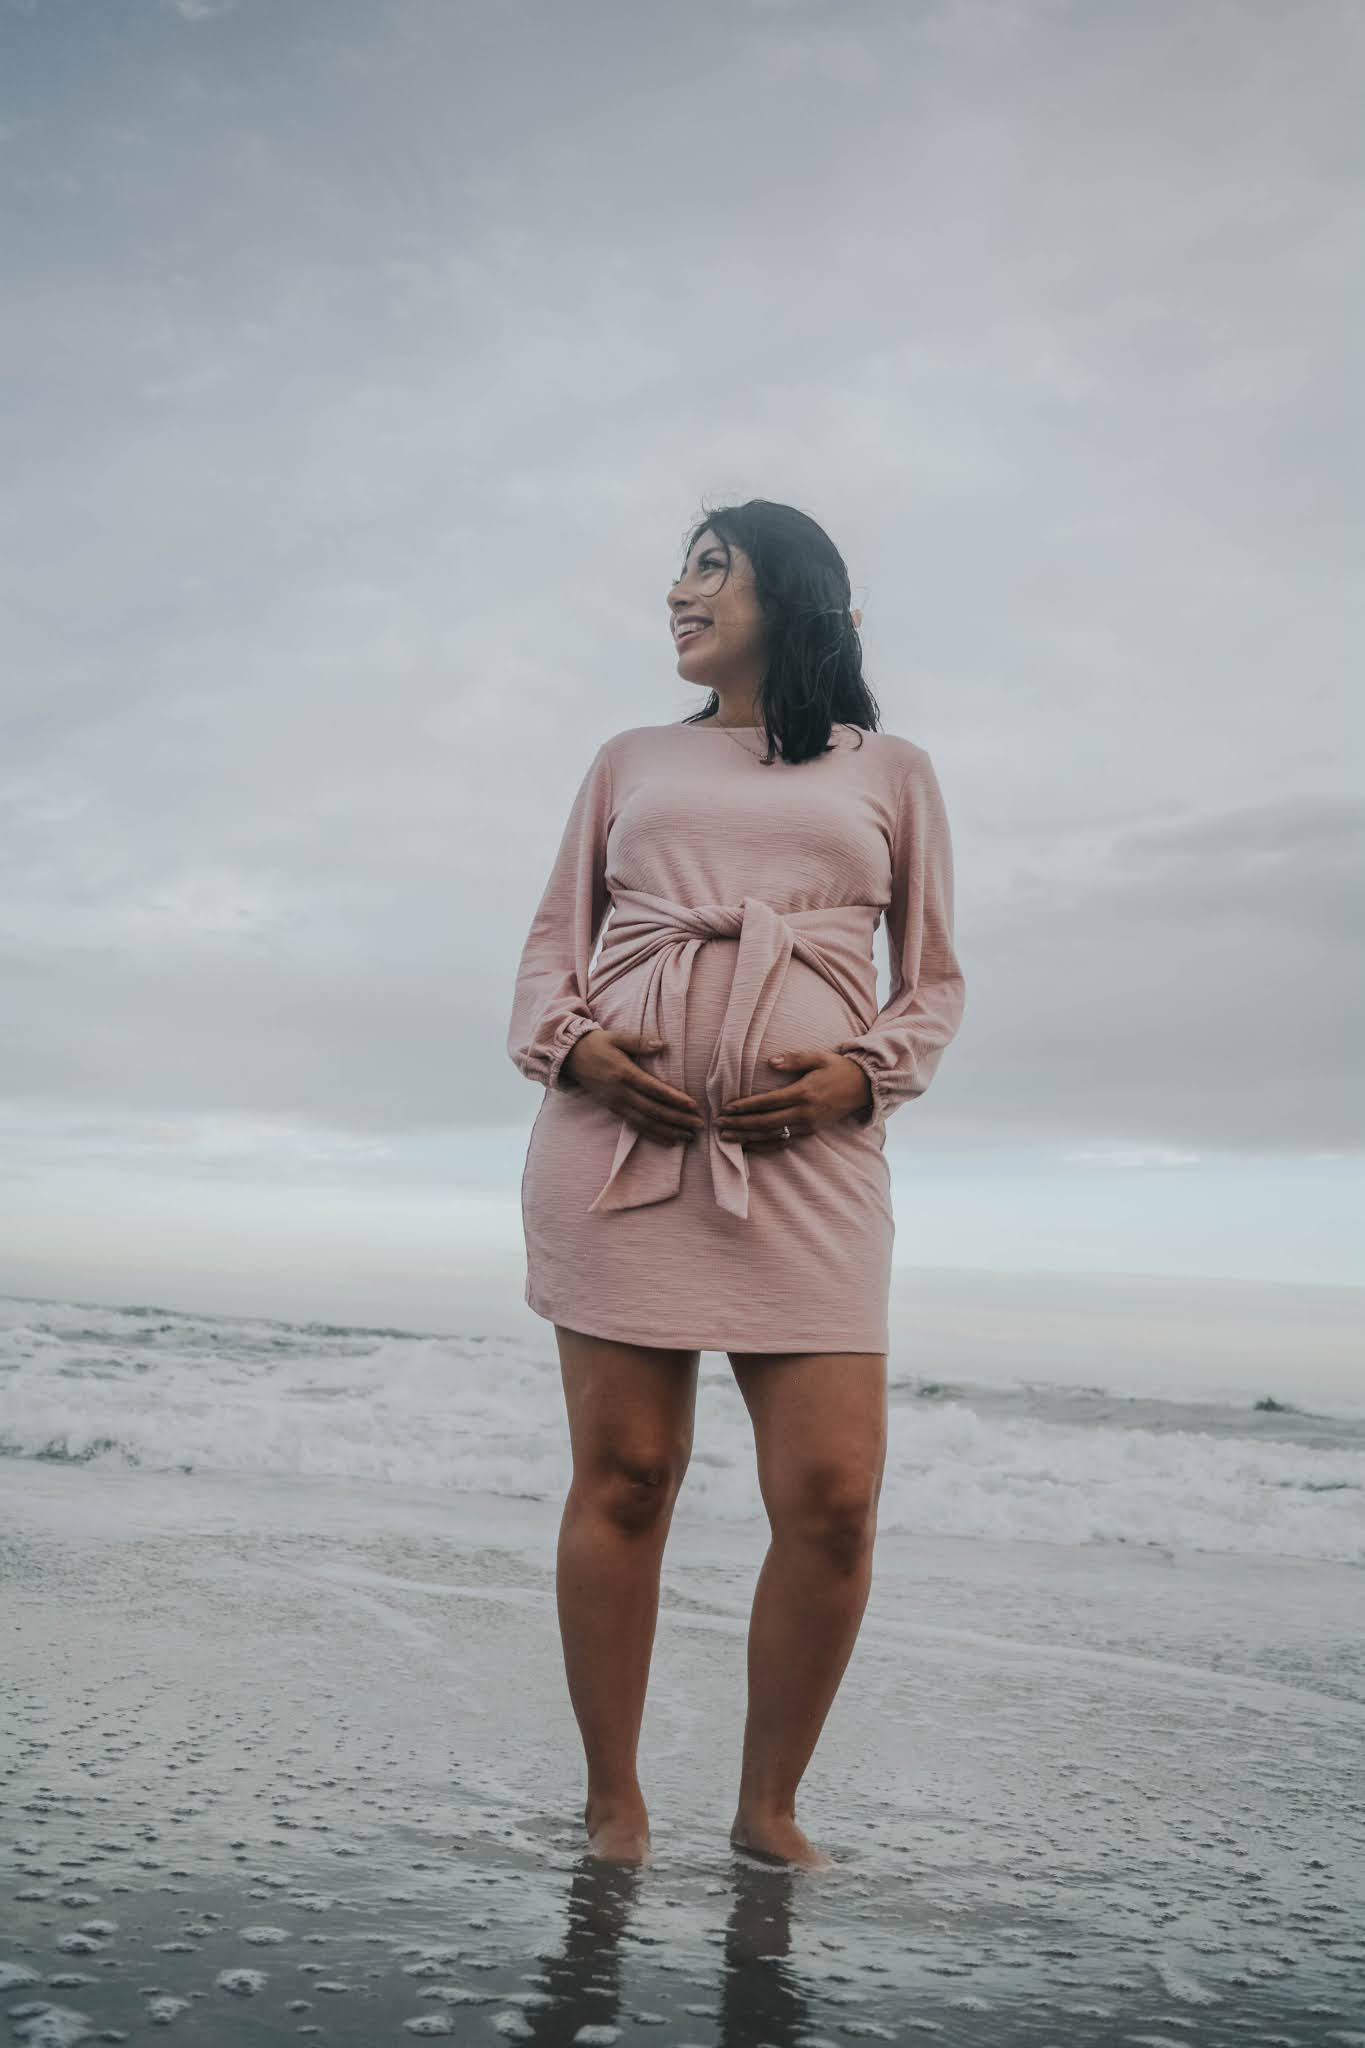 Maternity Photo Shoot Ideas: The Beach Sunset